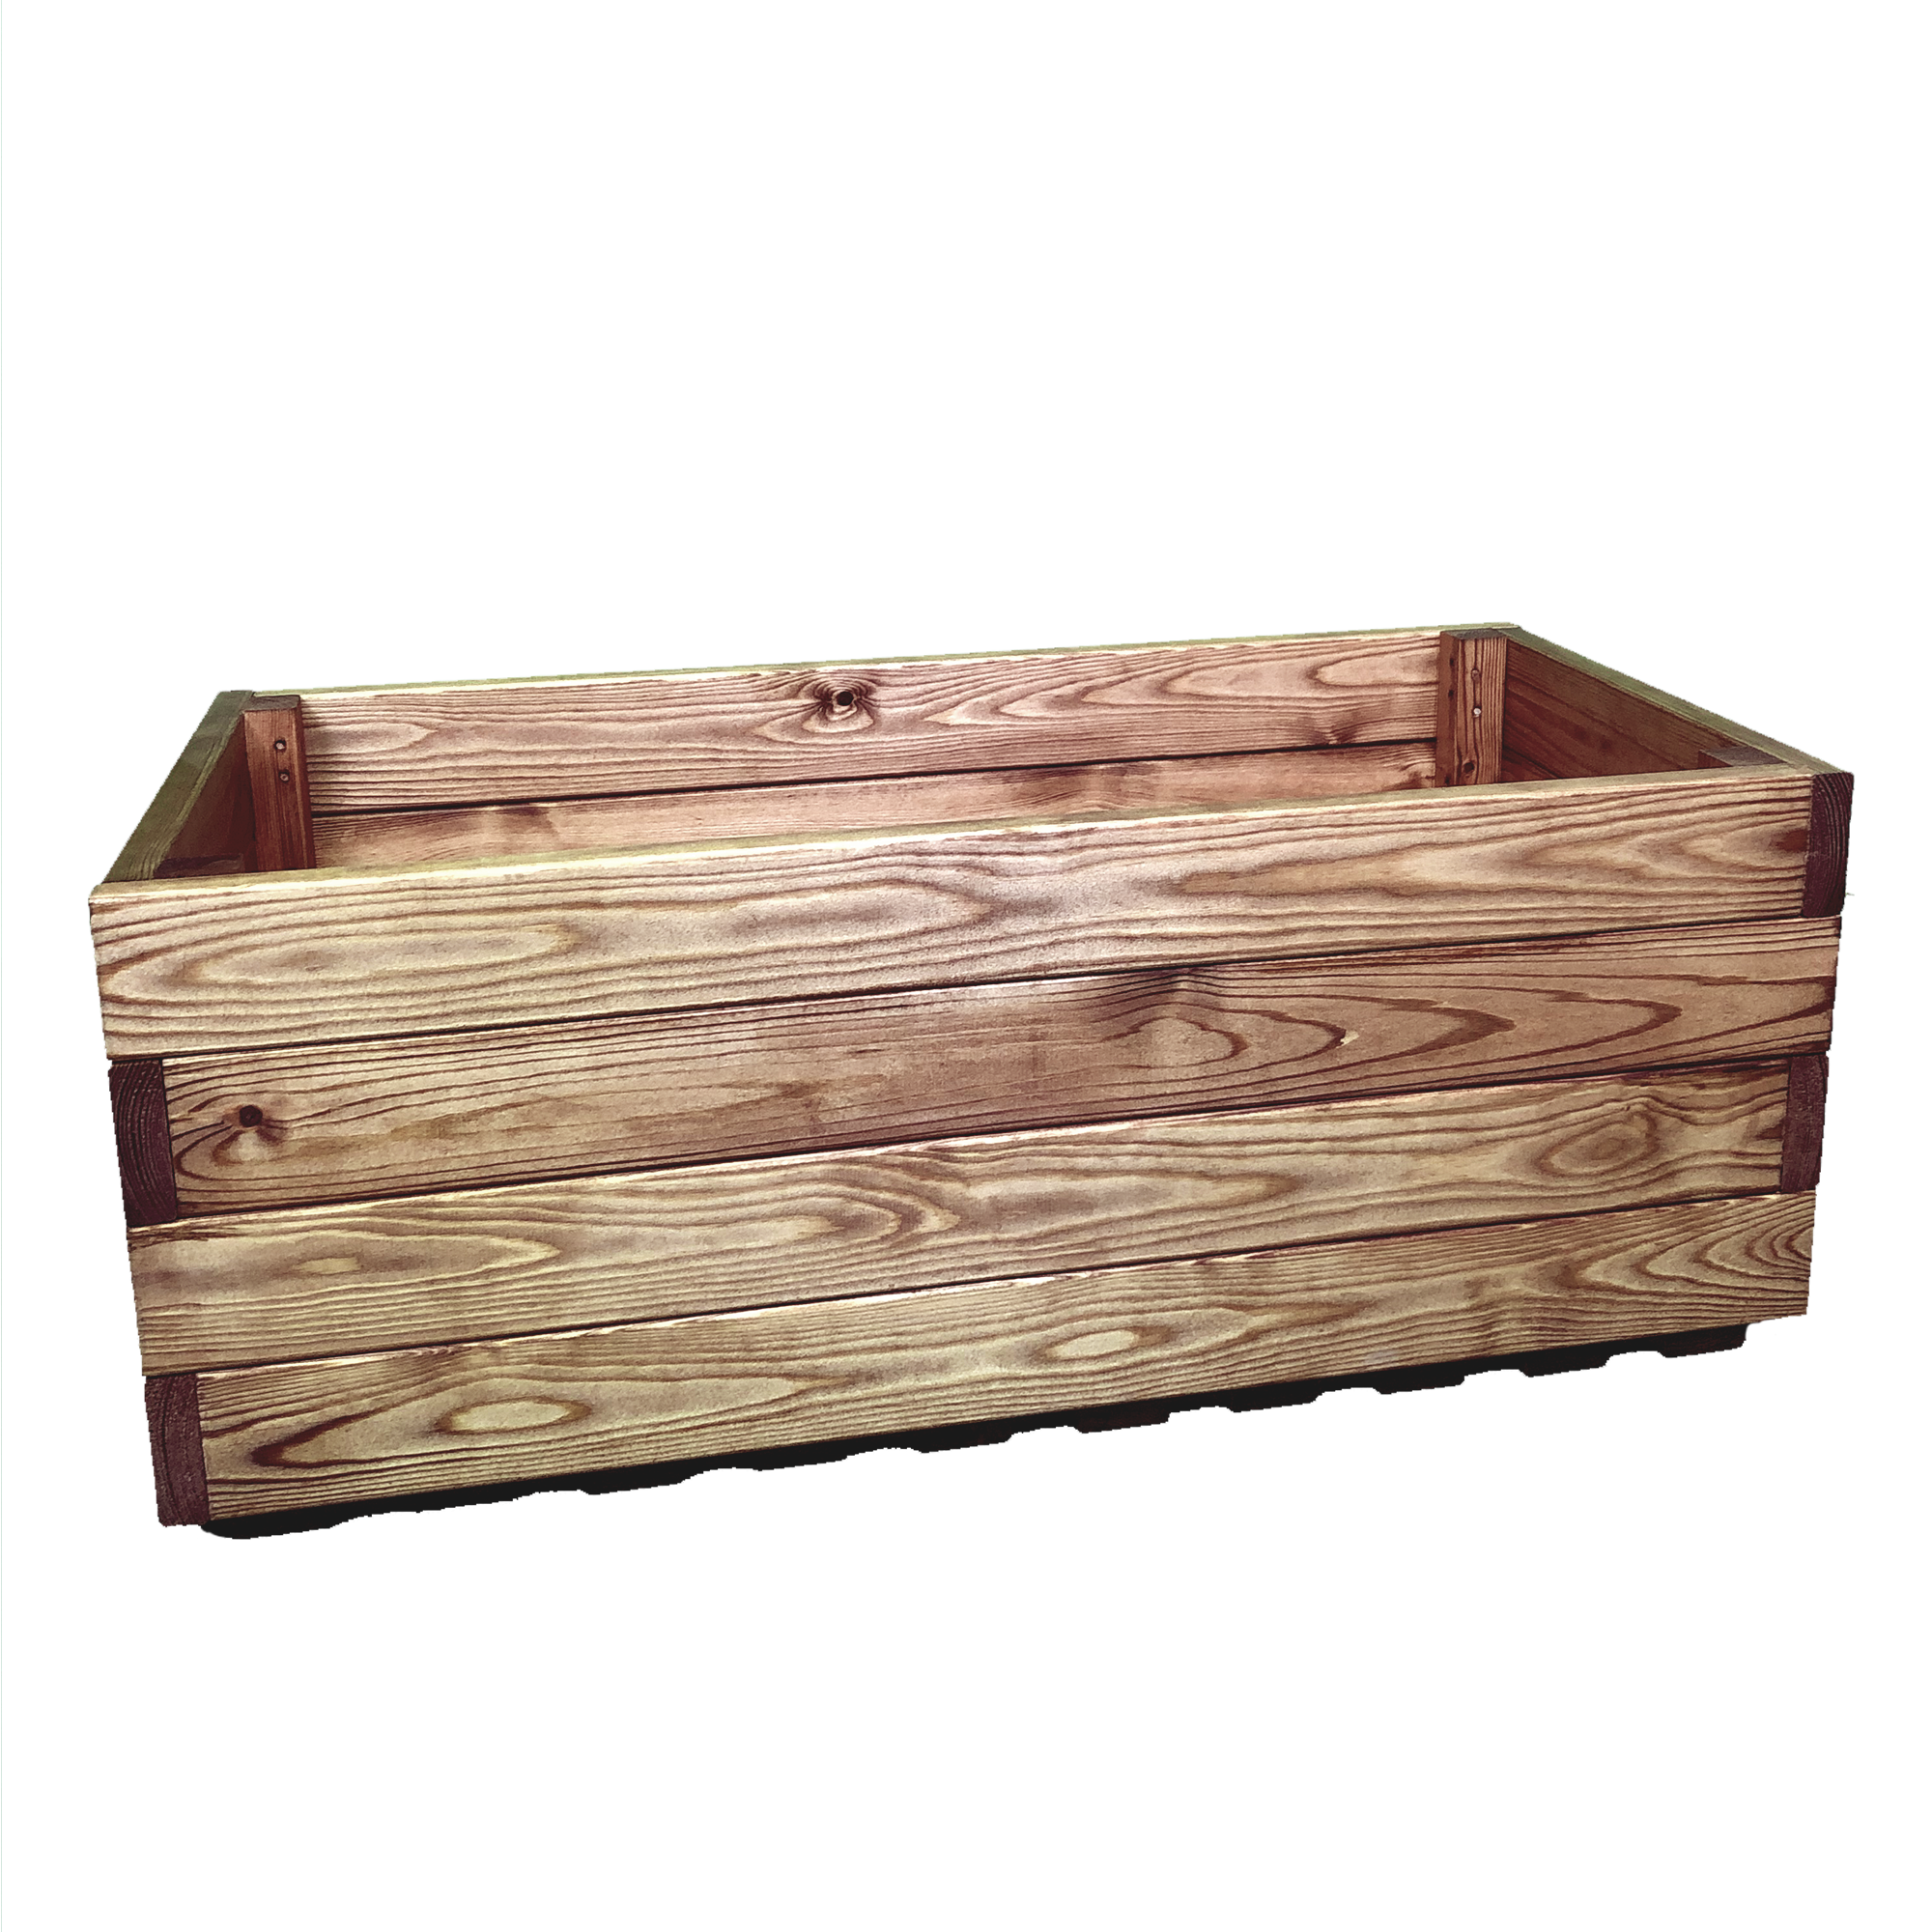 Simply Wood Premium Trough Wooden Garden Planter Extra